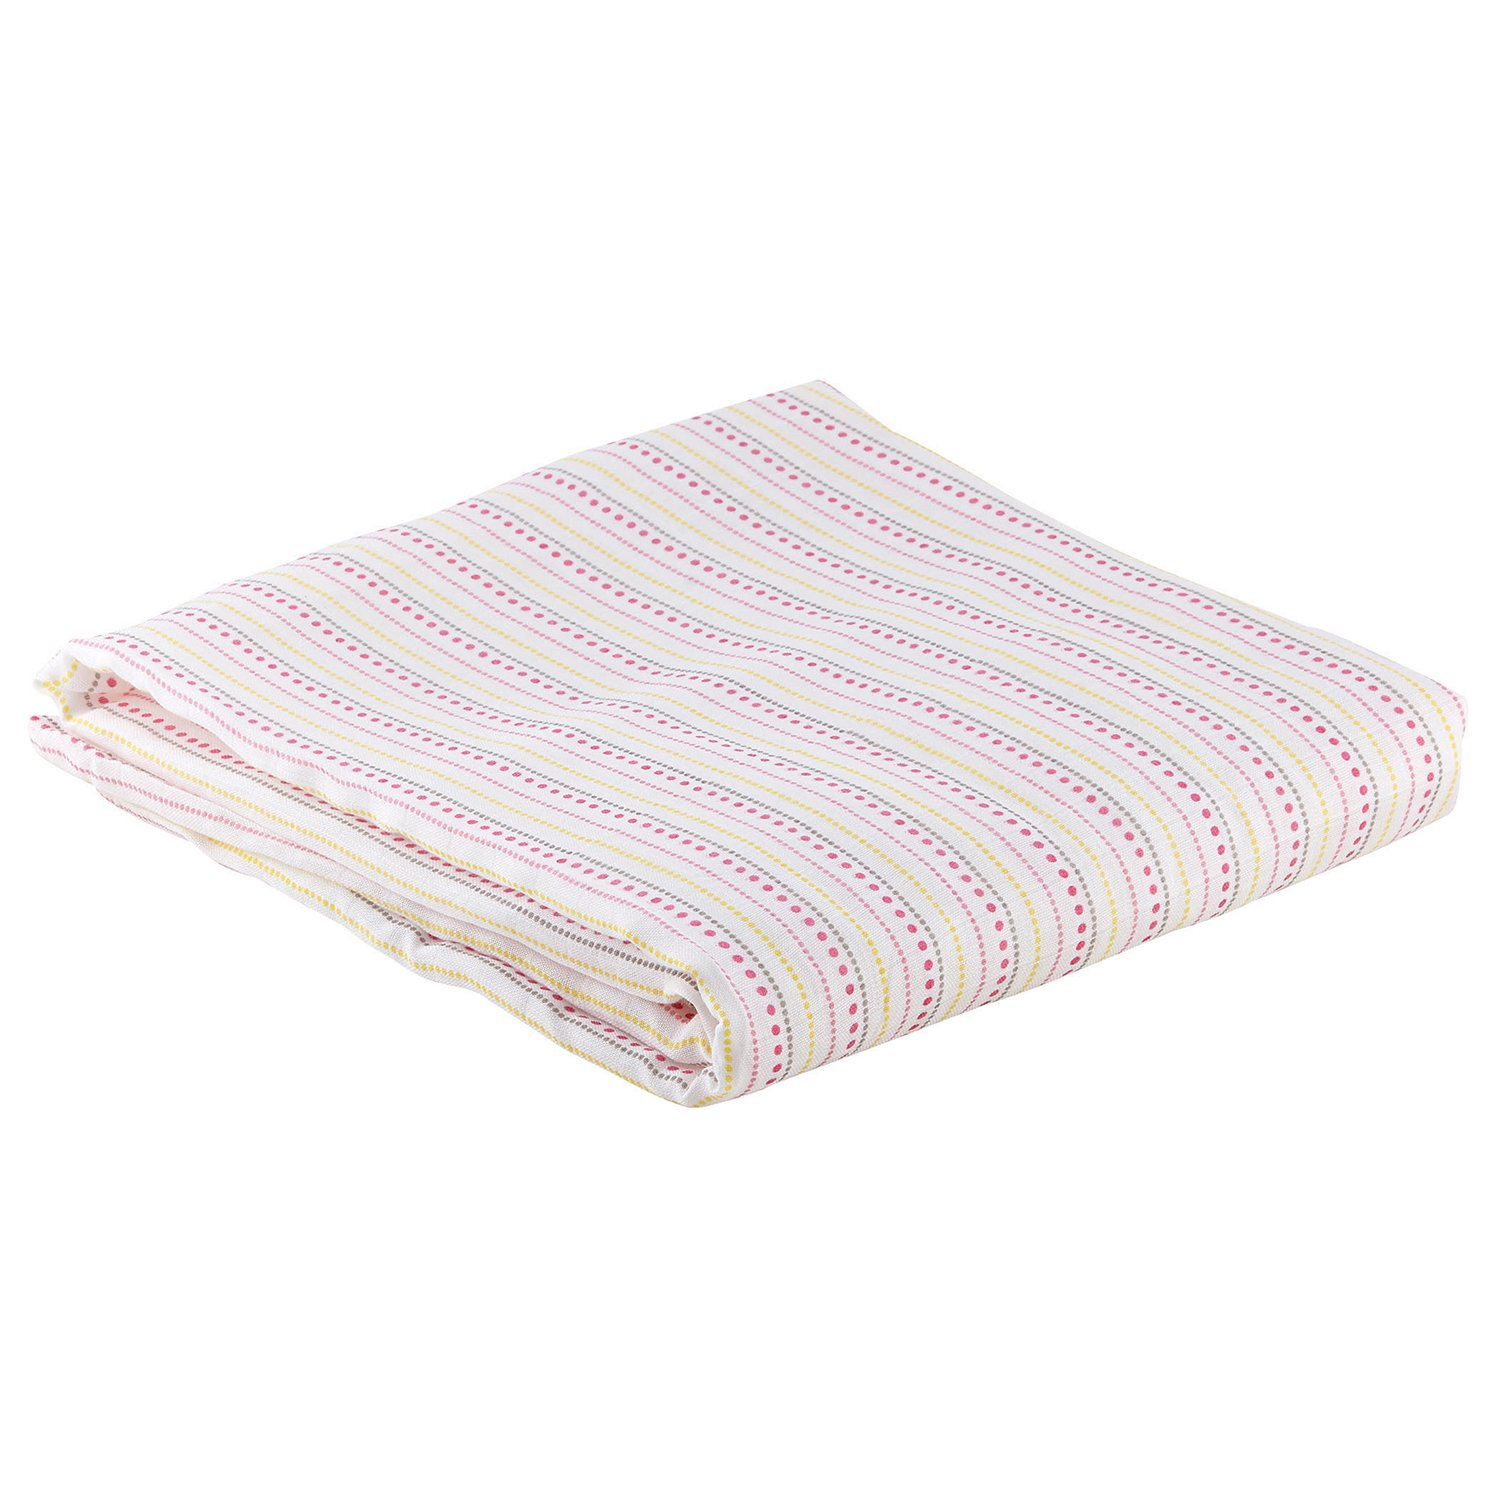 Stephan Baby Viscose Cotton Muslin Swaddle Blanket, Pink Polka Dots